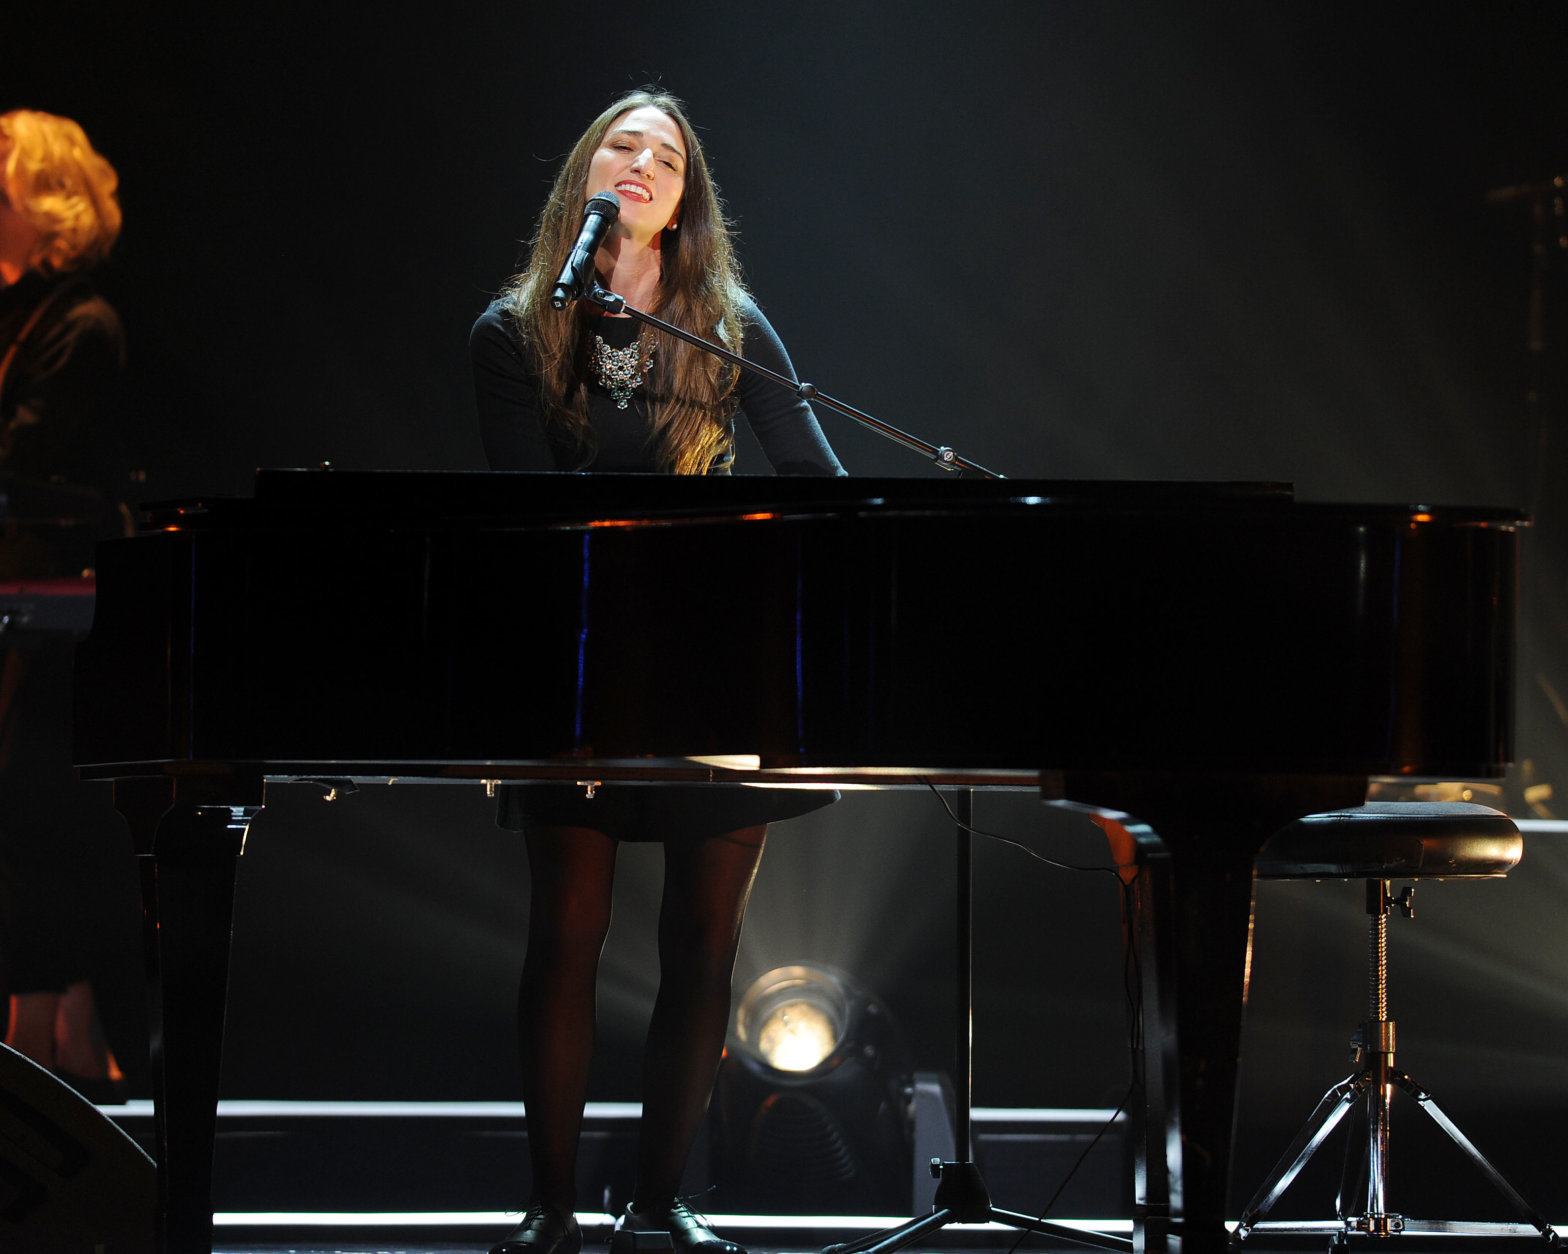 Sara Bareilles performs during the Little Black Dress Tour 2014 at the Seminole Casinos Hard Rock Live on July 25, 2014 in Hollywood, Florida.  (Photo by (Photo Jeff Daly/Invision/AP)